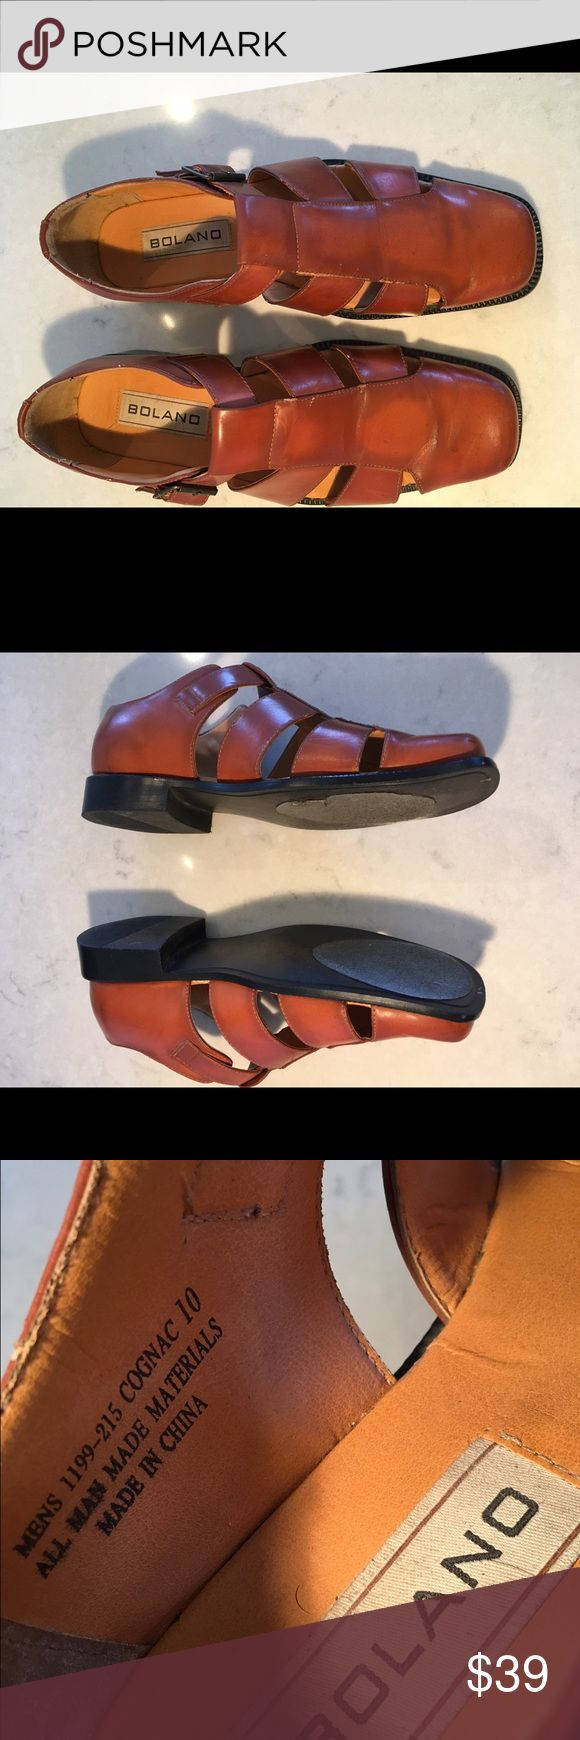 Men dress Sandals Cognac men sandals - feels larger than sz 10 (10.5 or 11) Bolano Shoes Sandals & Flip-Flops